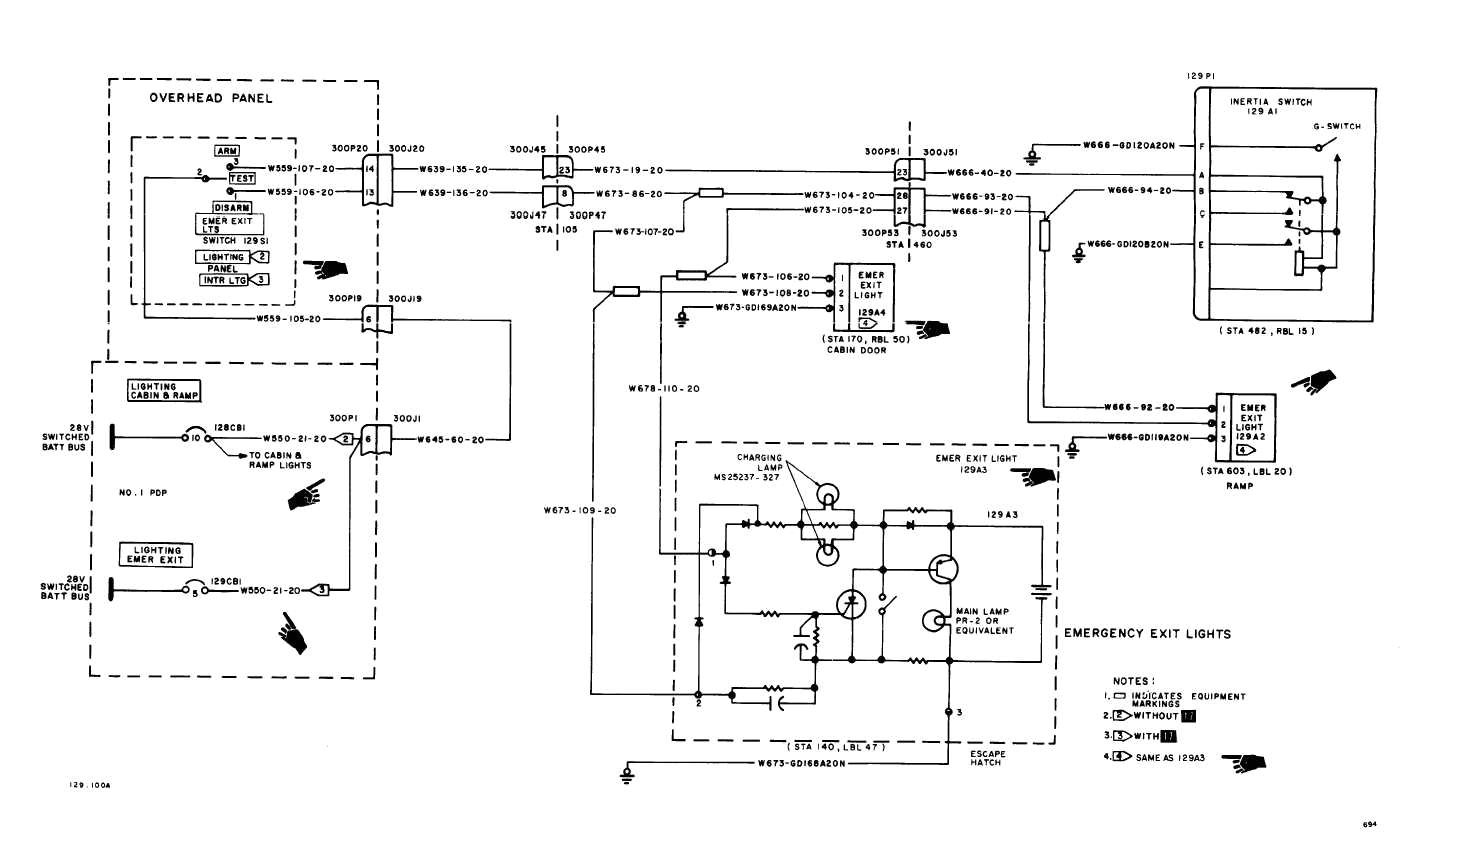 emergency exit lights wiring diagram mix emergency exit wiring diagram 1